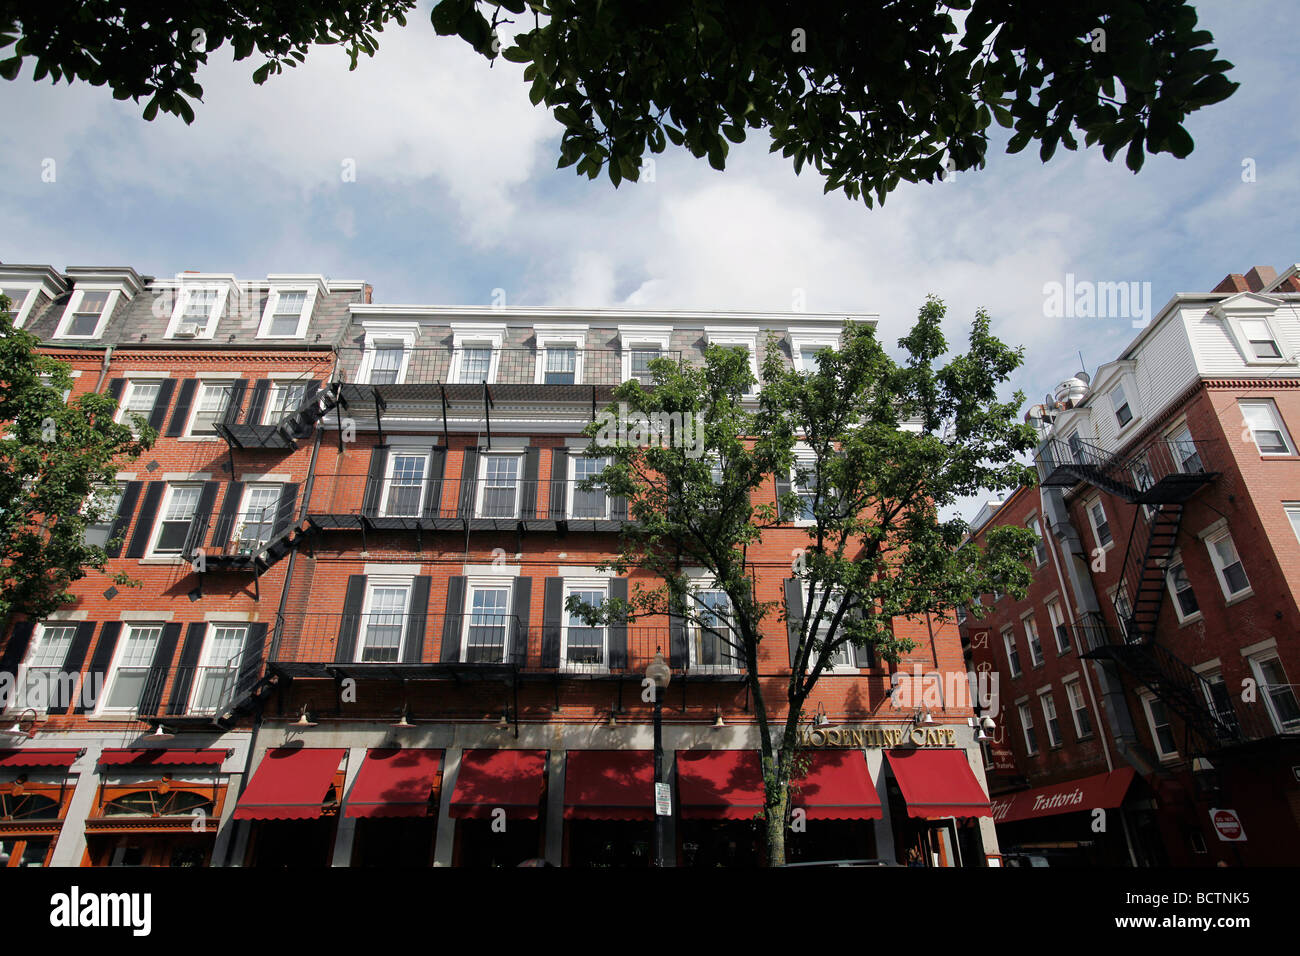 Hanover Street, Boston's North End neighborhood - Stock Image